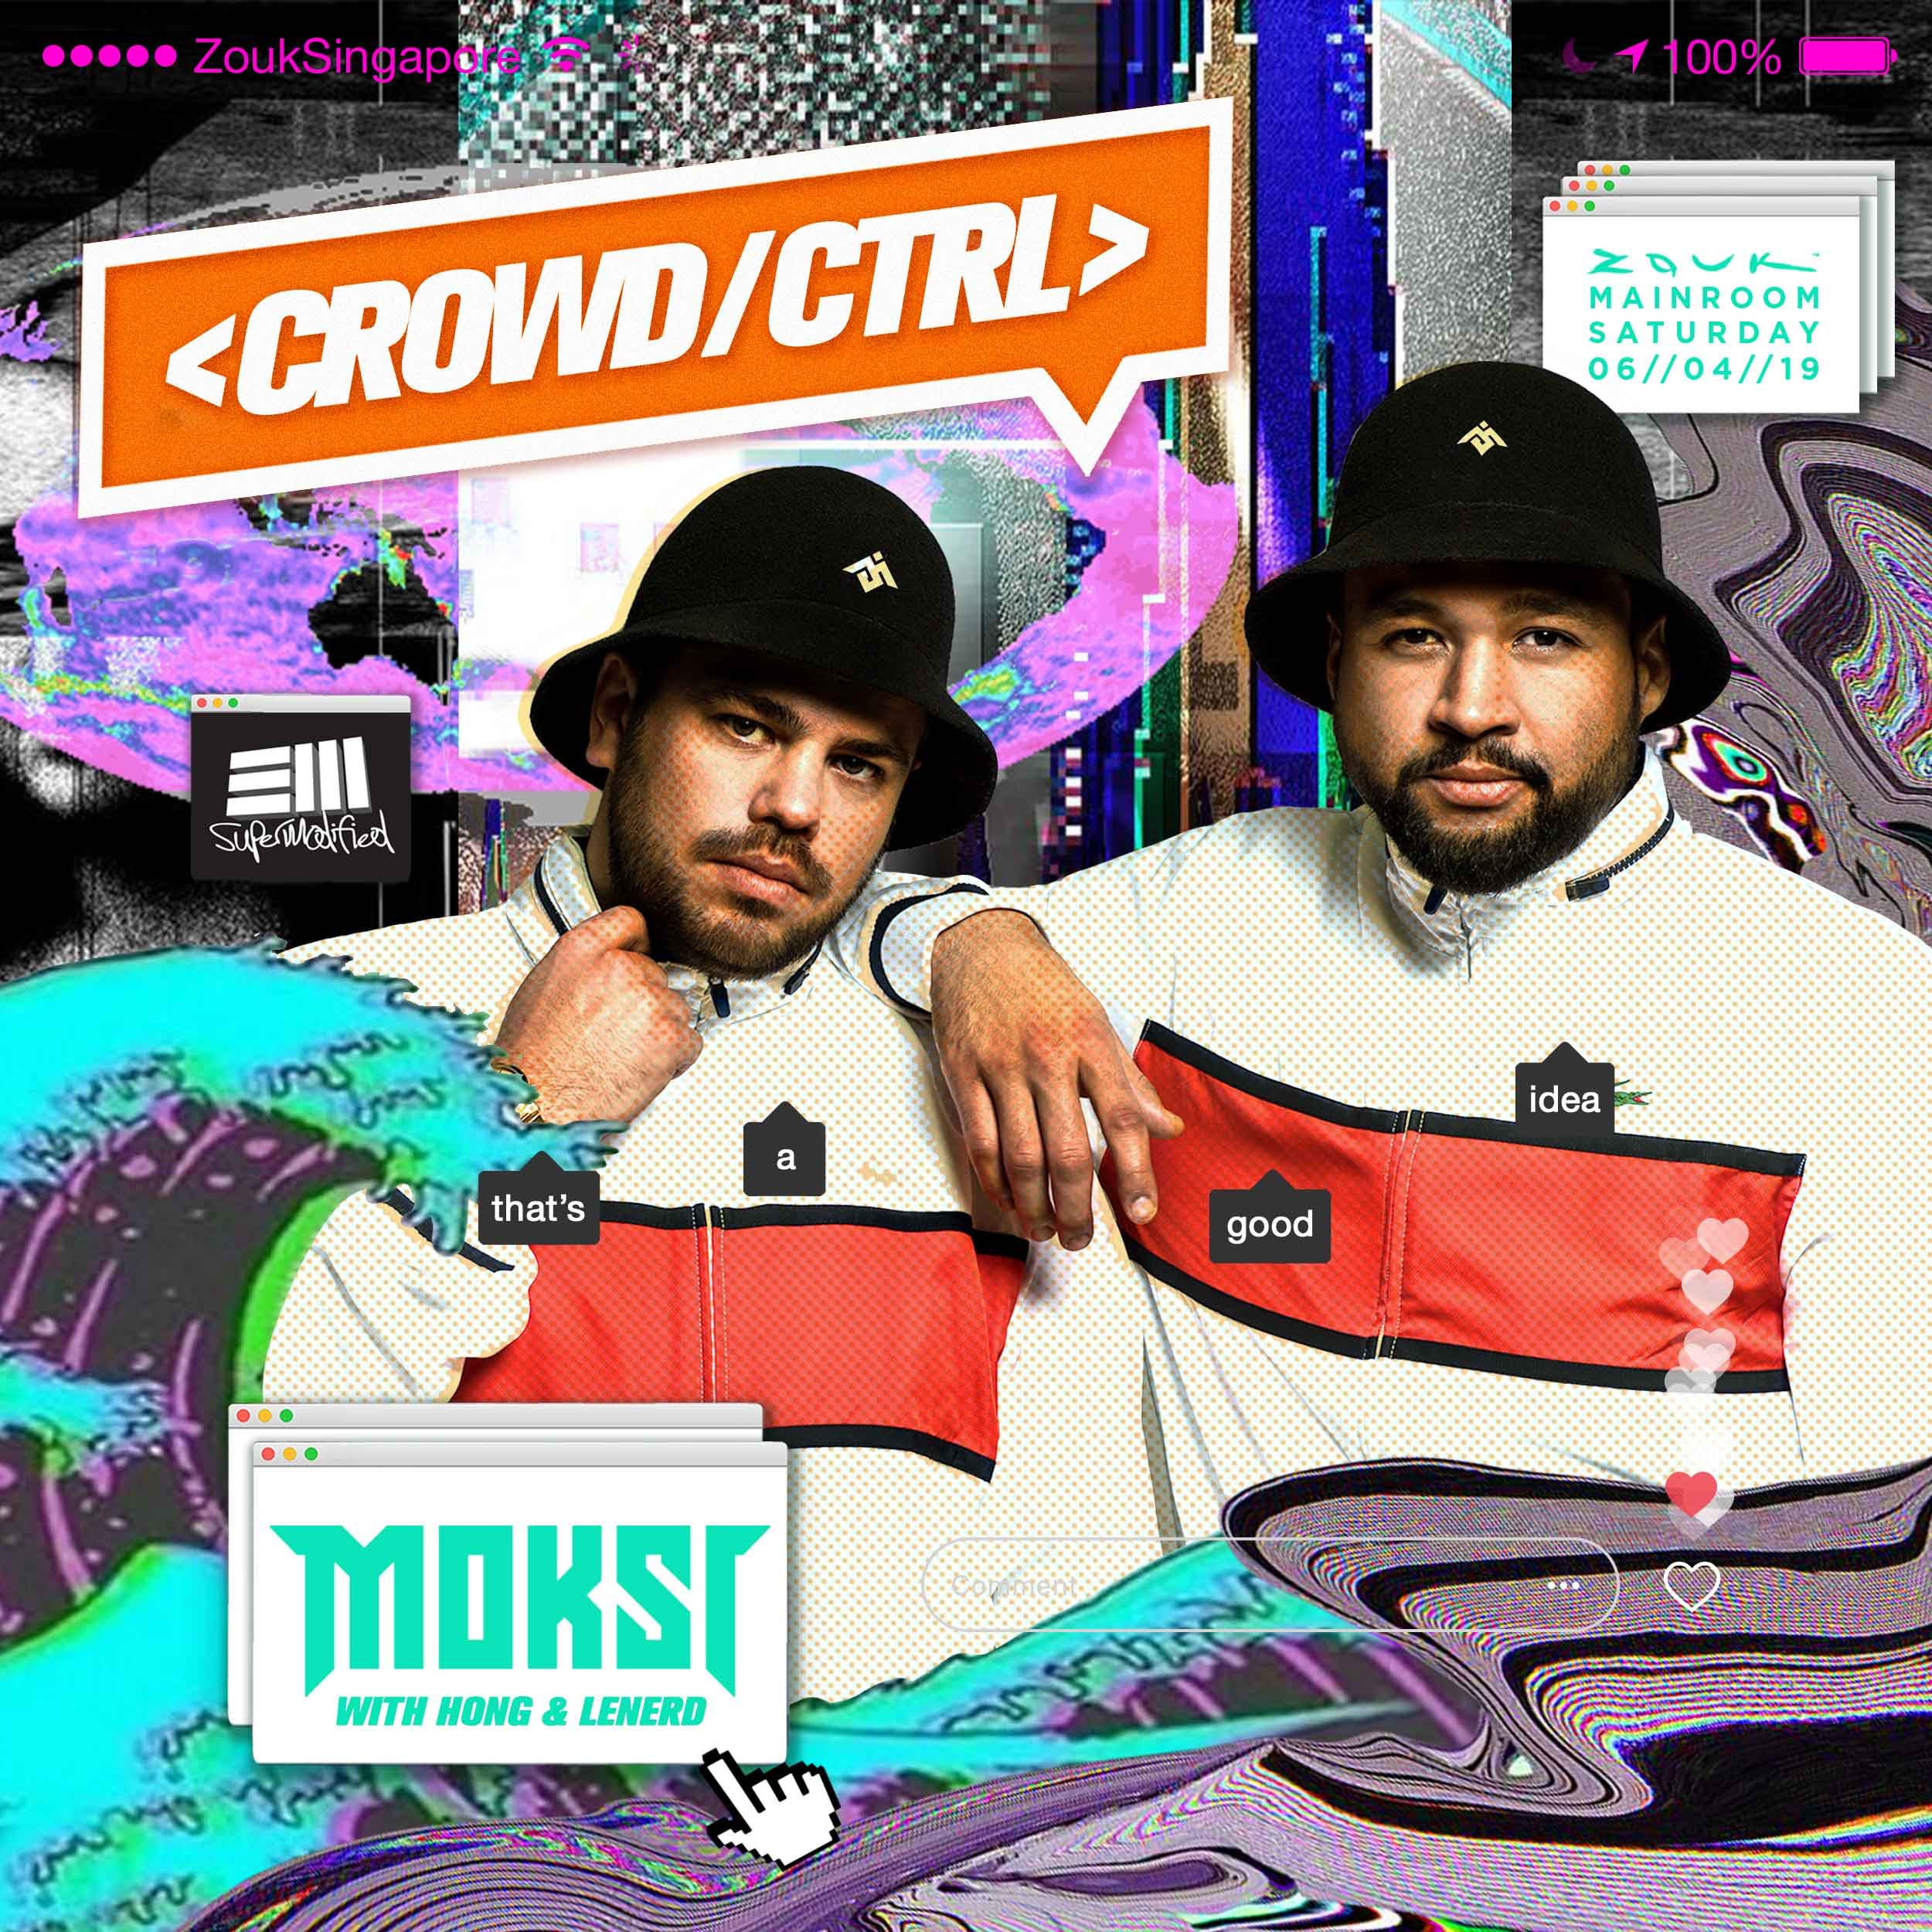 Crowd Ctrl_0604_Moksi_FBIG.jpg